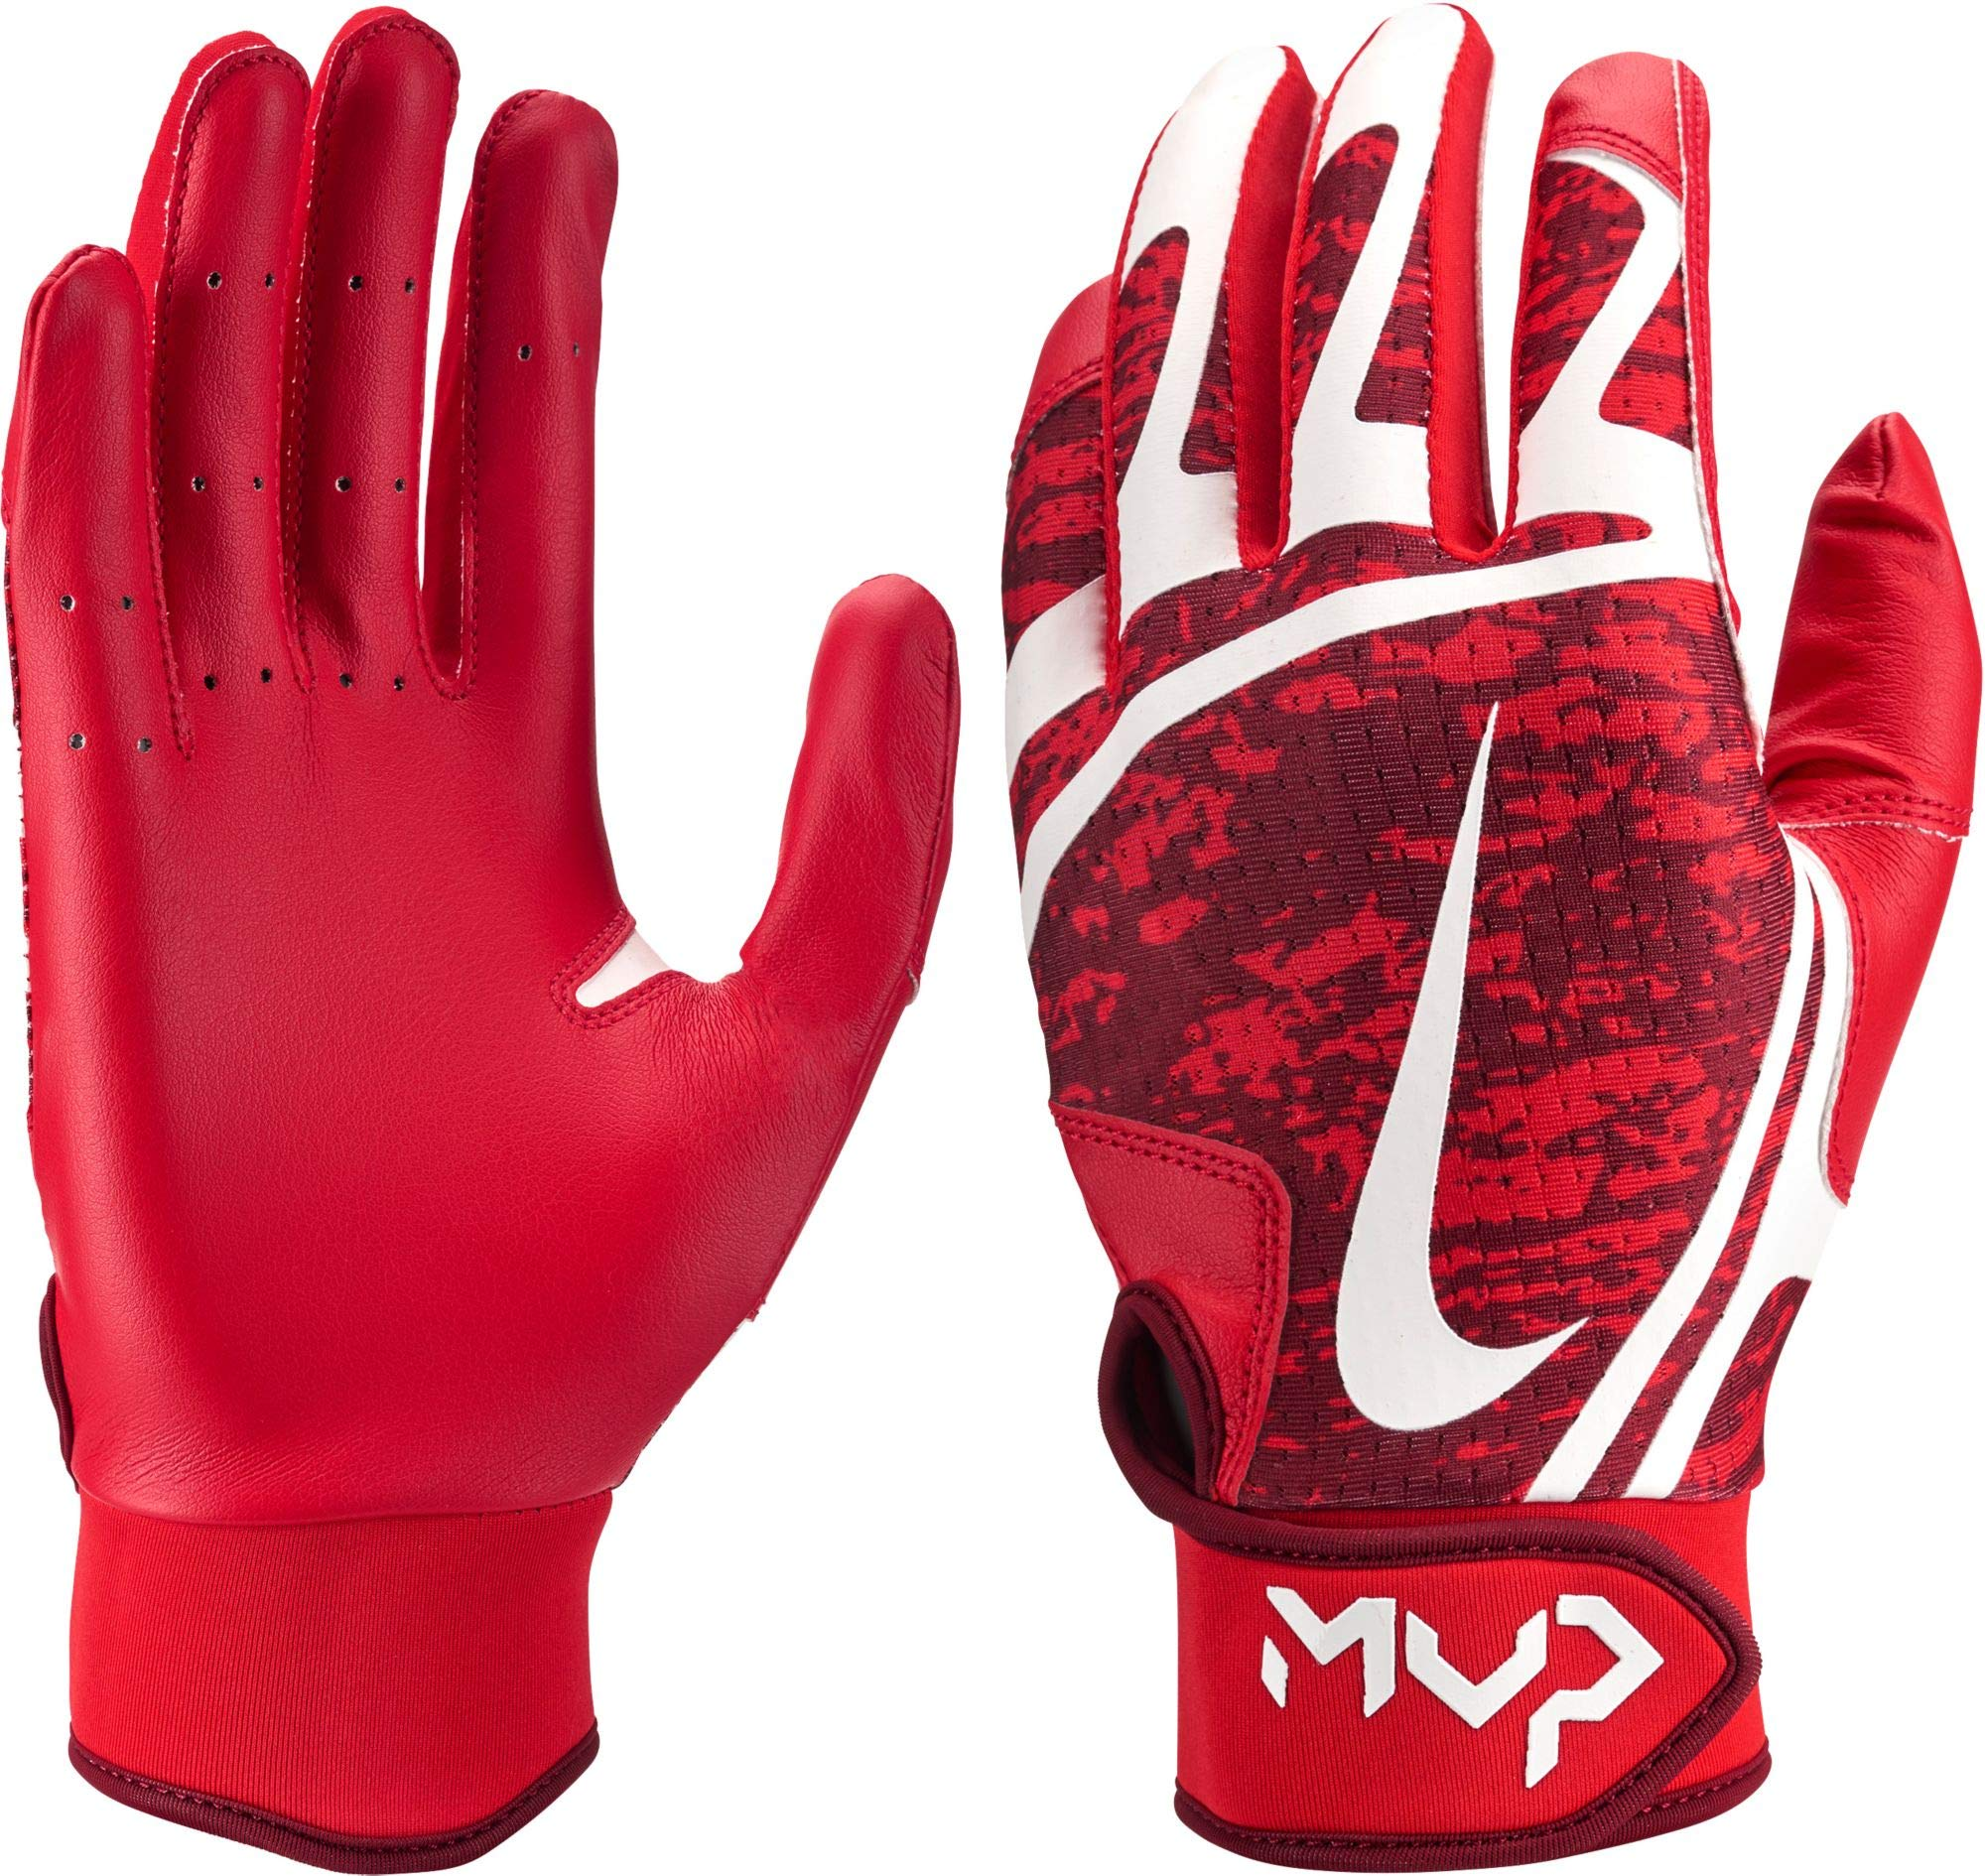 Nike Women's Hyperdiamond Edge Batting Gloves 2019 (Red/White, X-Large) by Nike (Image #1)